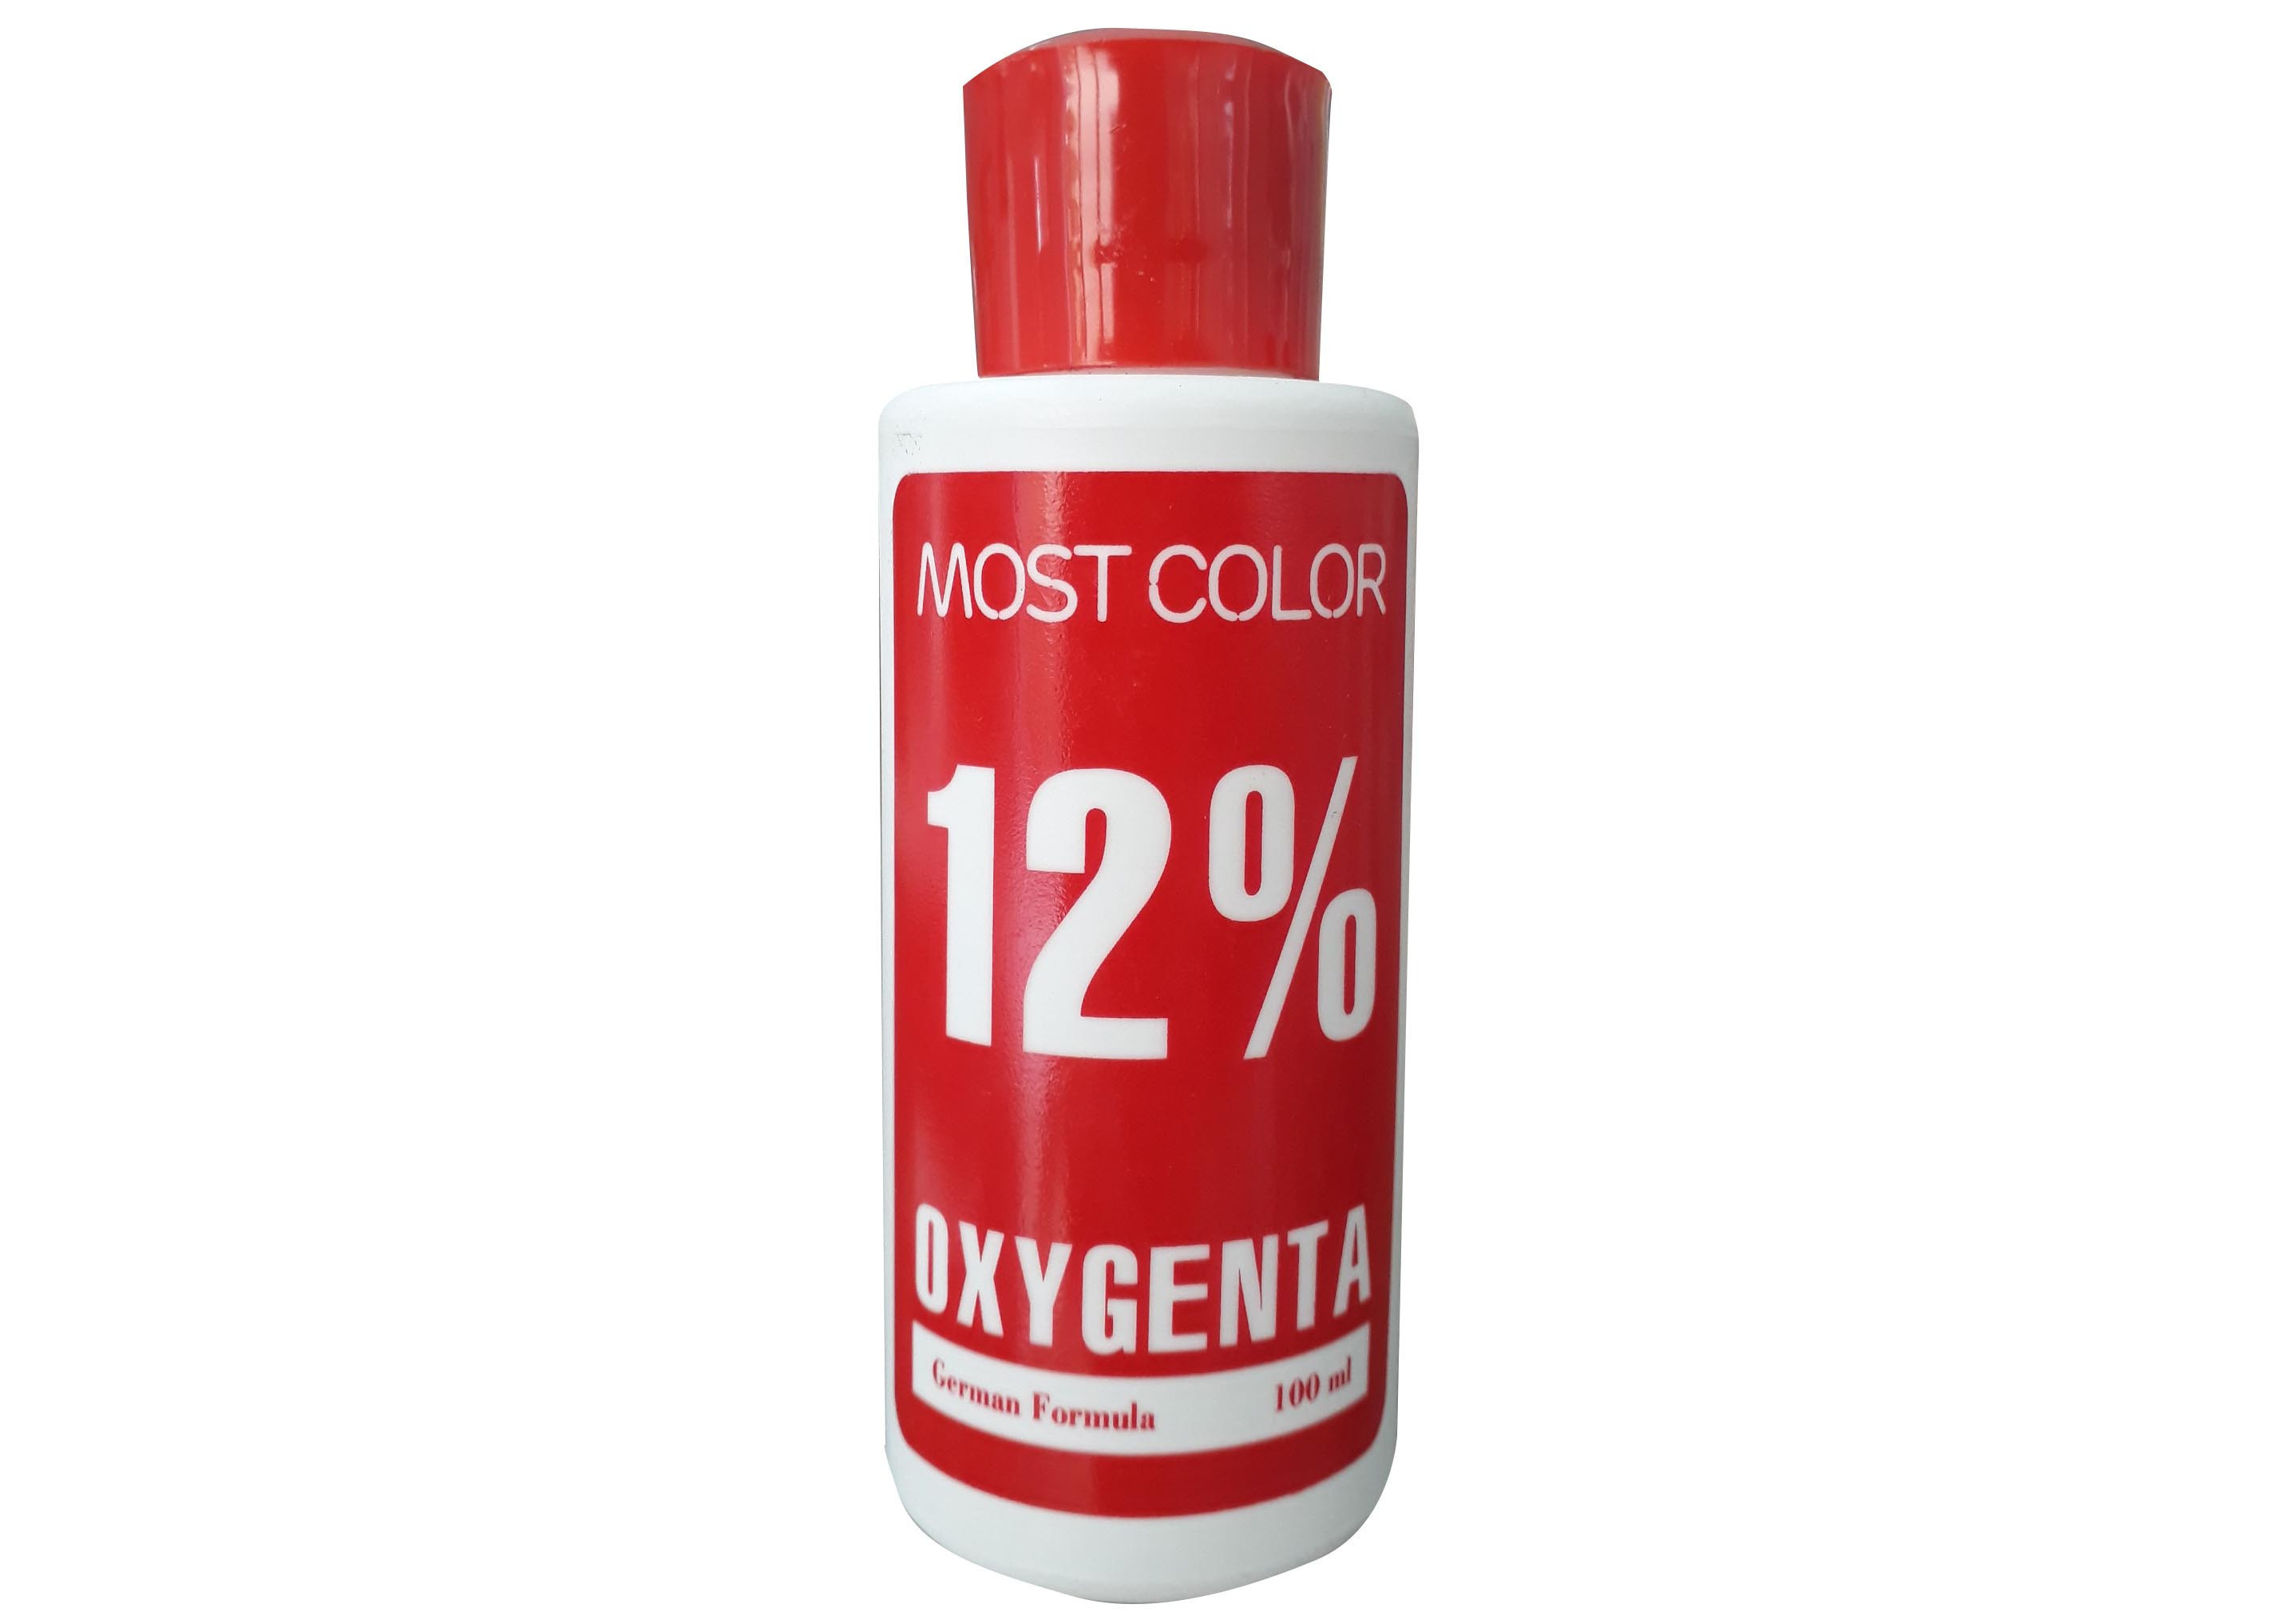 OXY MOST COLOR 12% -- 100ml